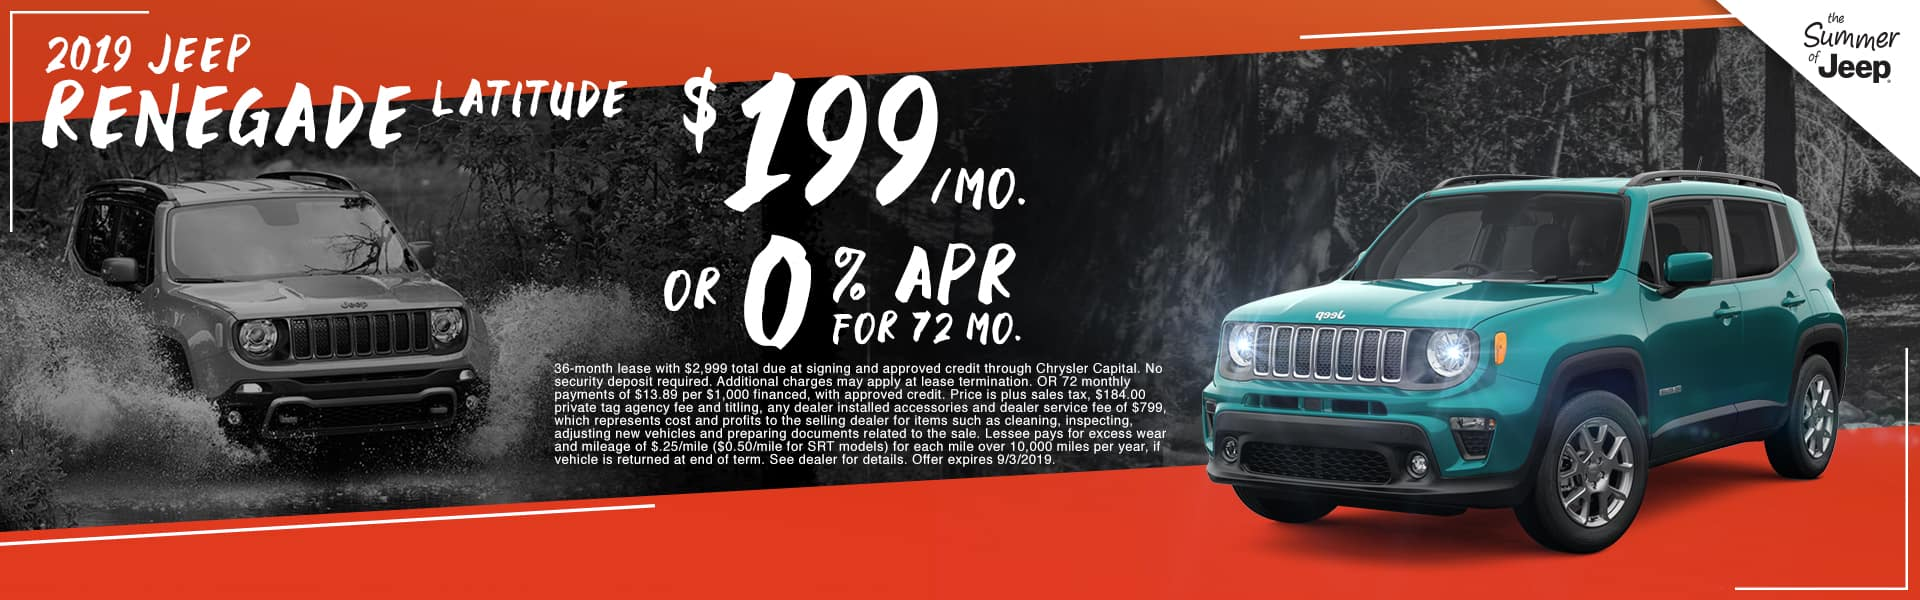 2019 Jeep Renegade Latitude | $199 Per Month OR 0% APR For 72 Months